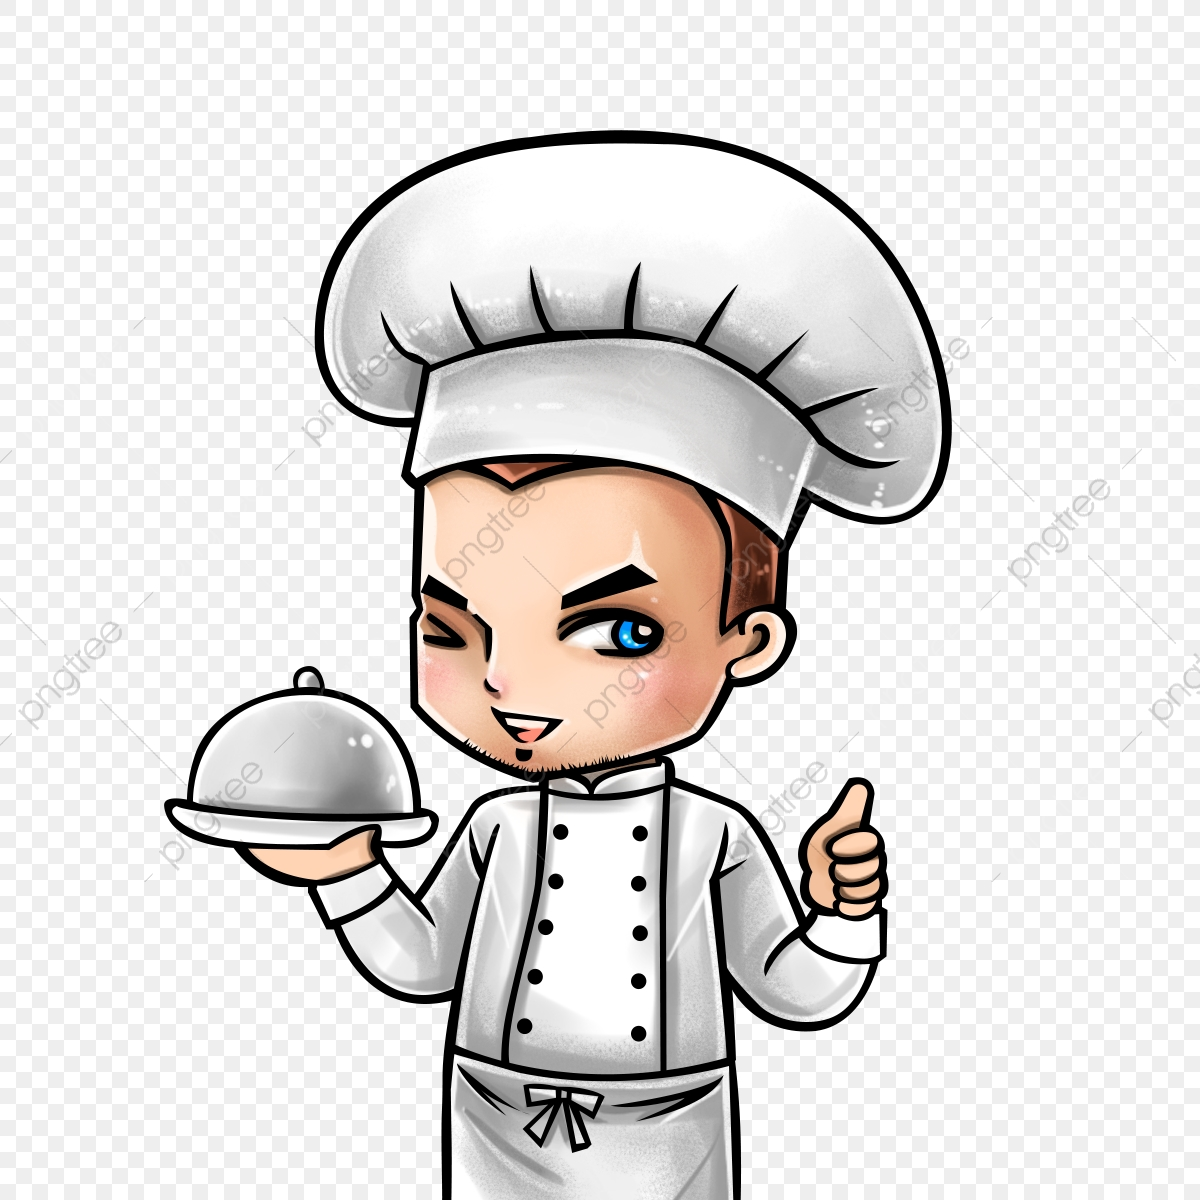 Cartoon Chef Png Images Vector And Psd Files Free Download On Pngtree